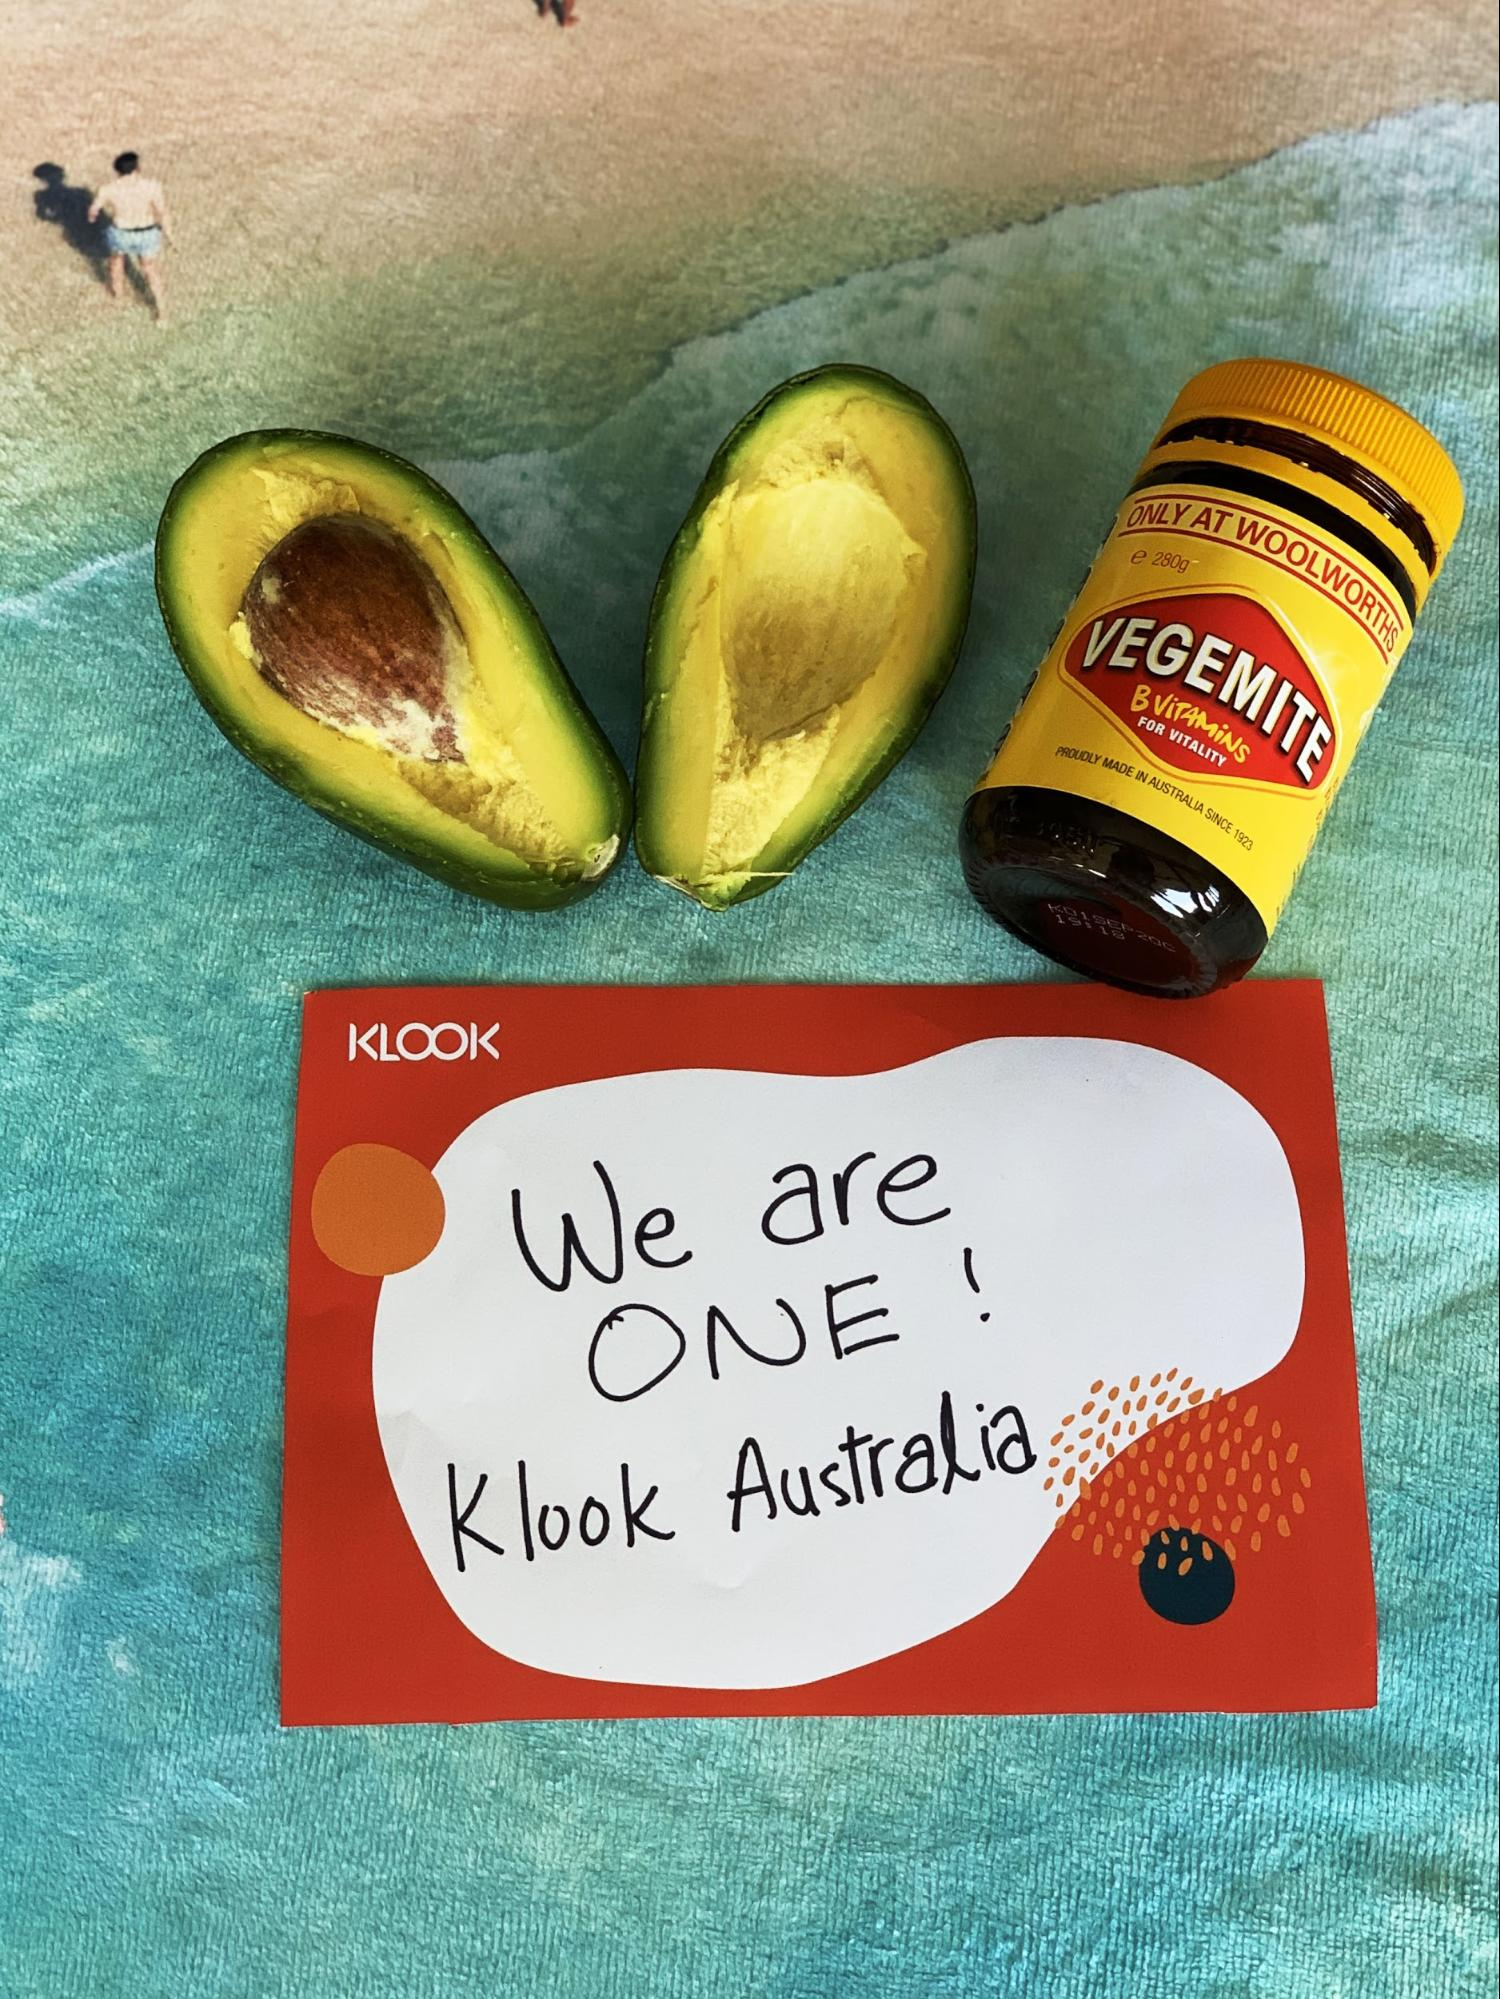 Vegemite and avocado from Australia